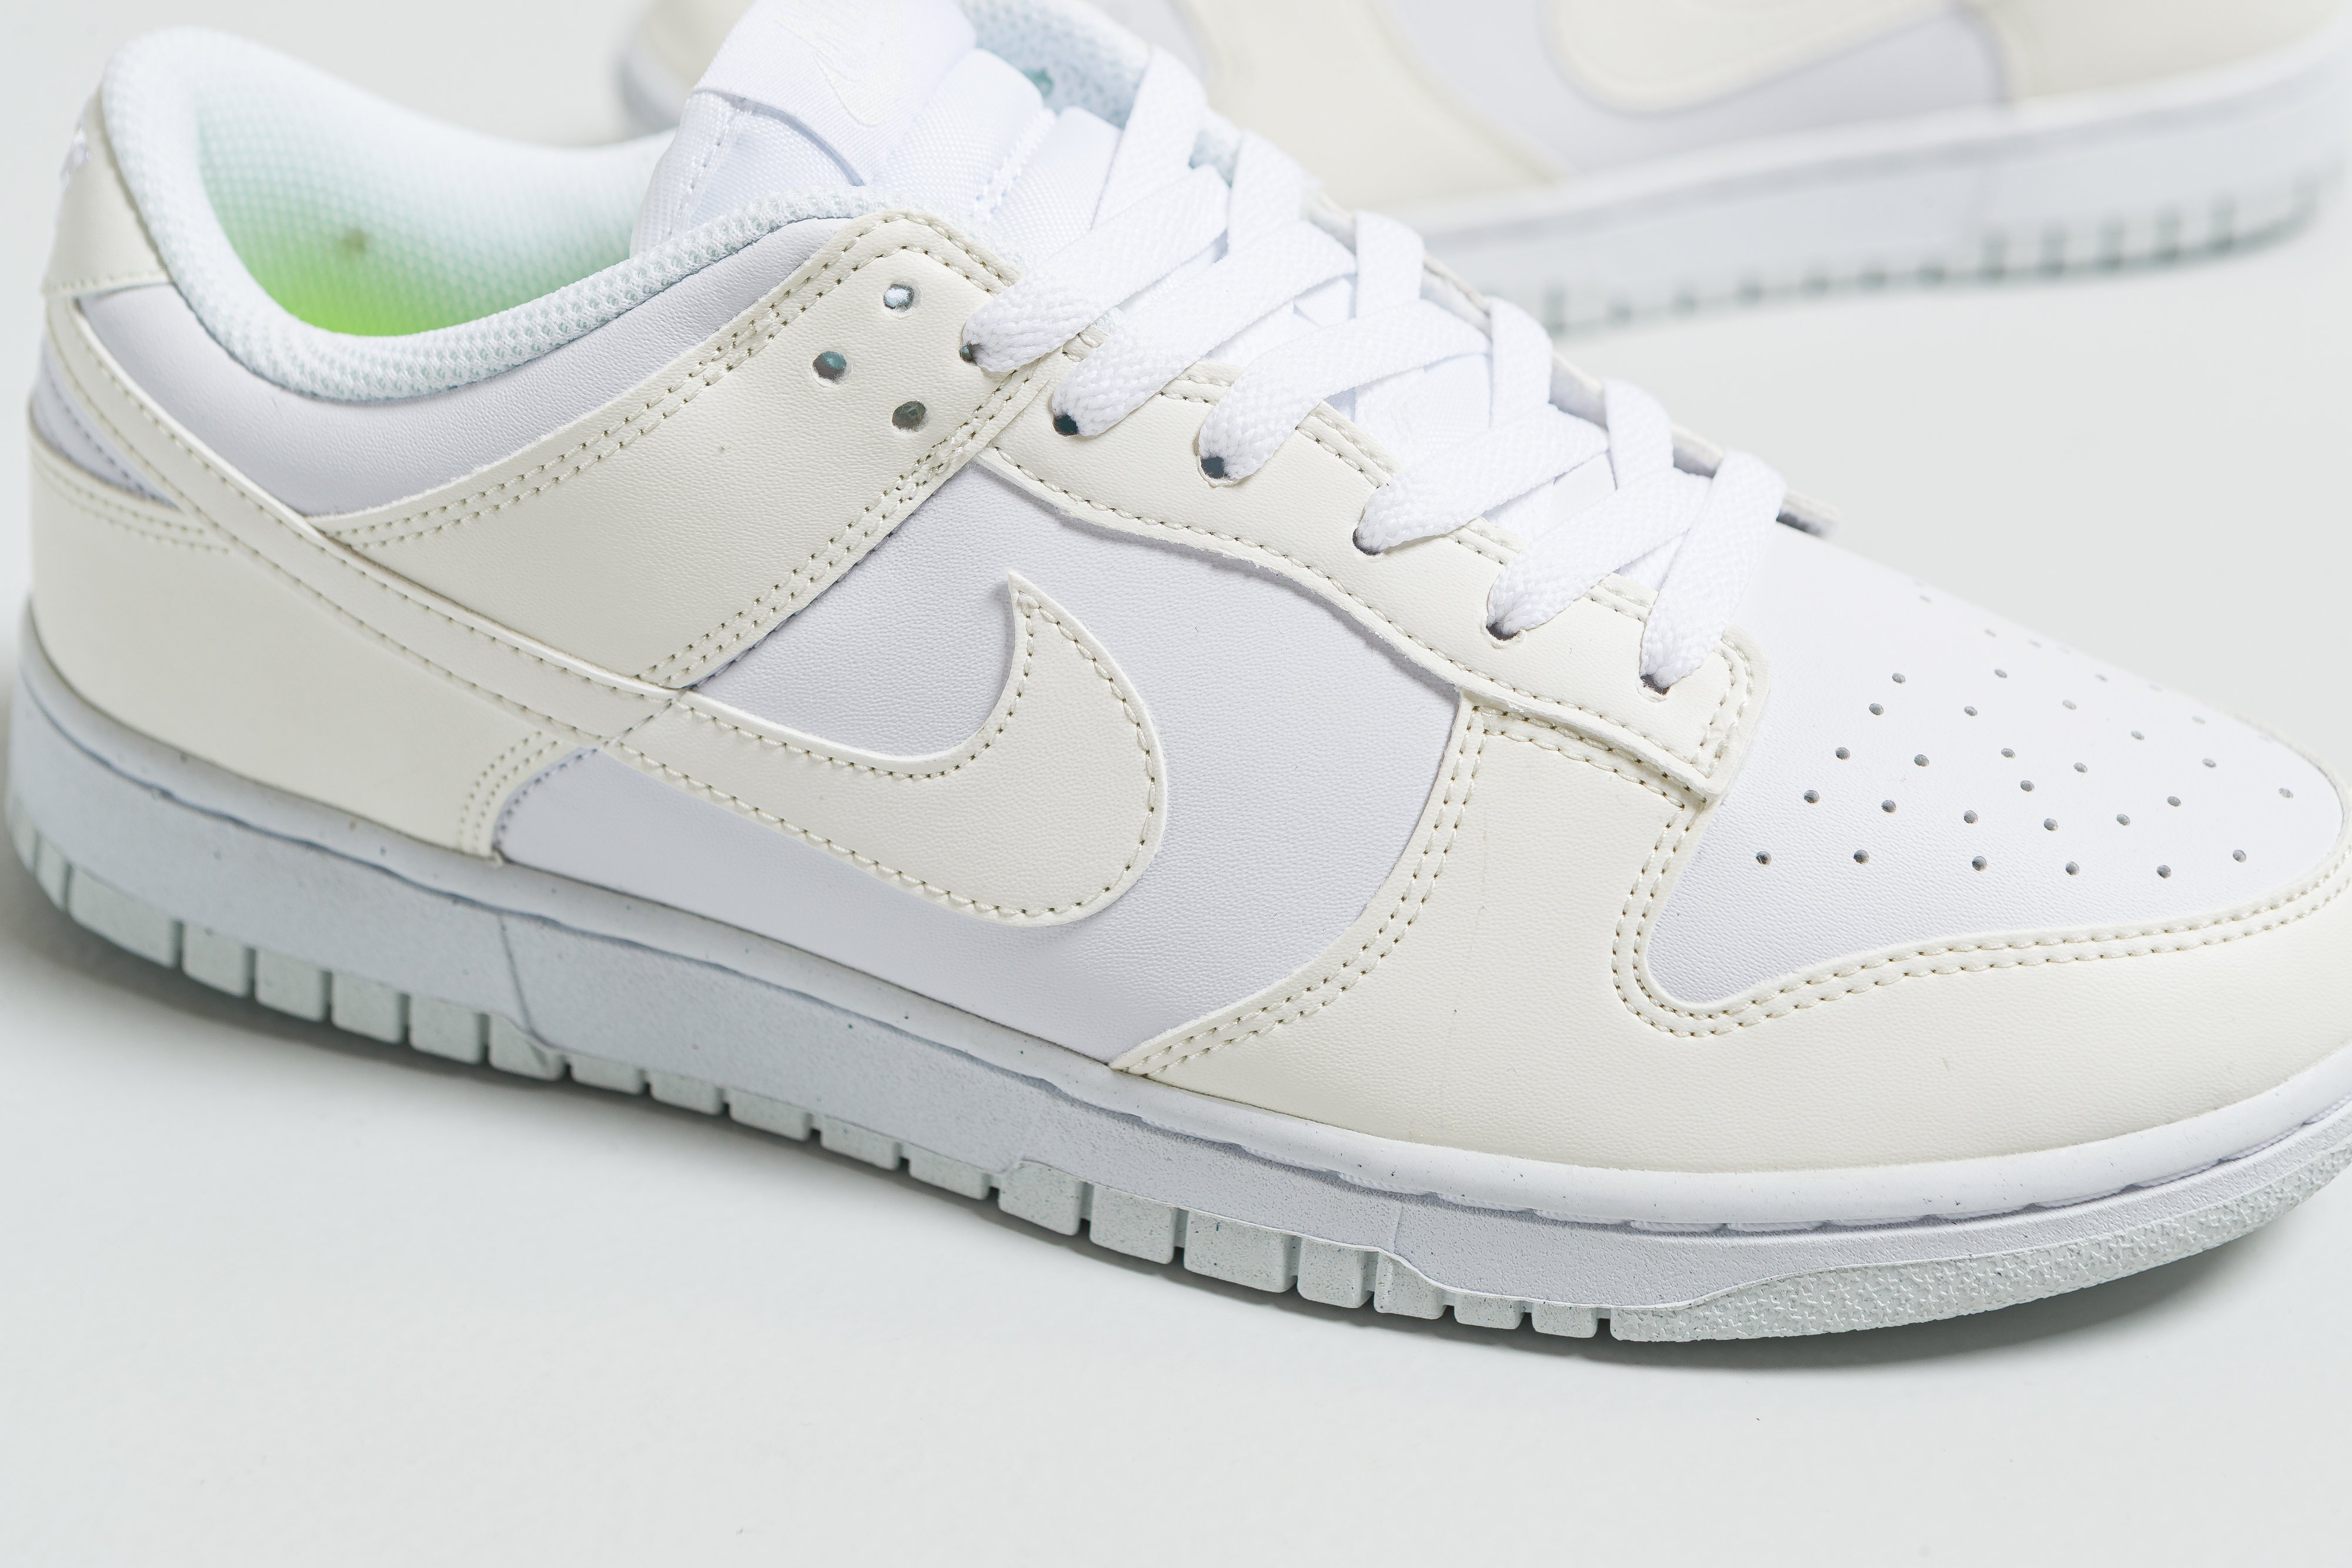 Nike - Womens Dunk Low Next Nature - White/Sail - Up There